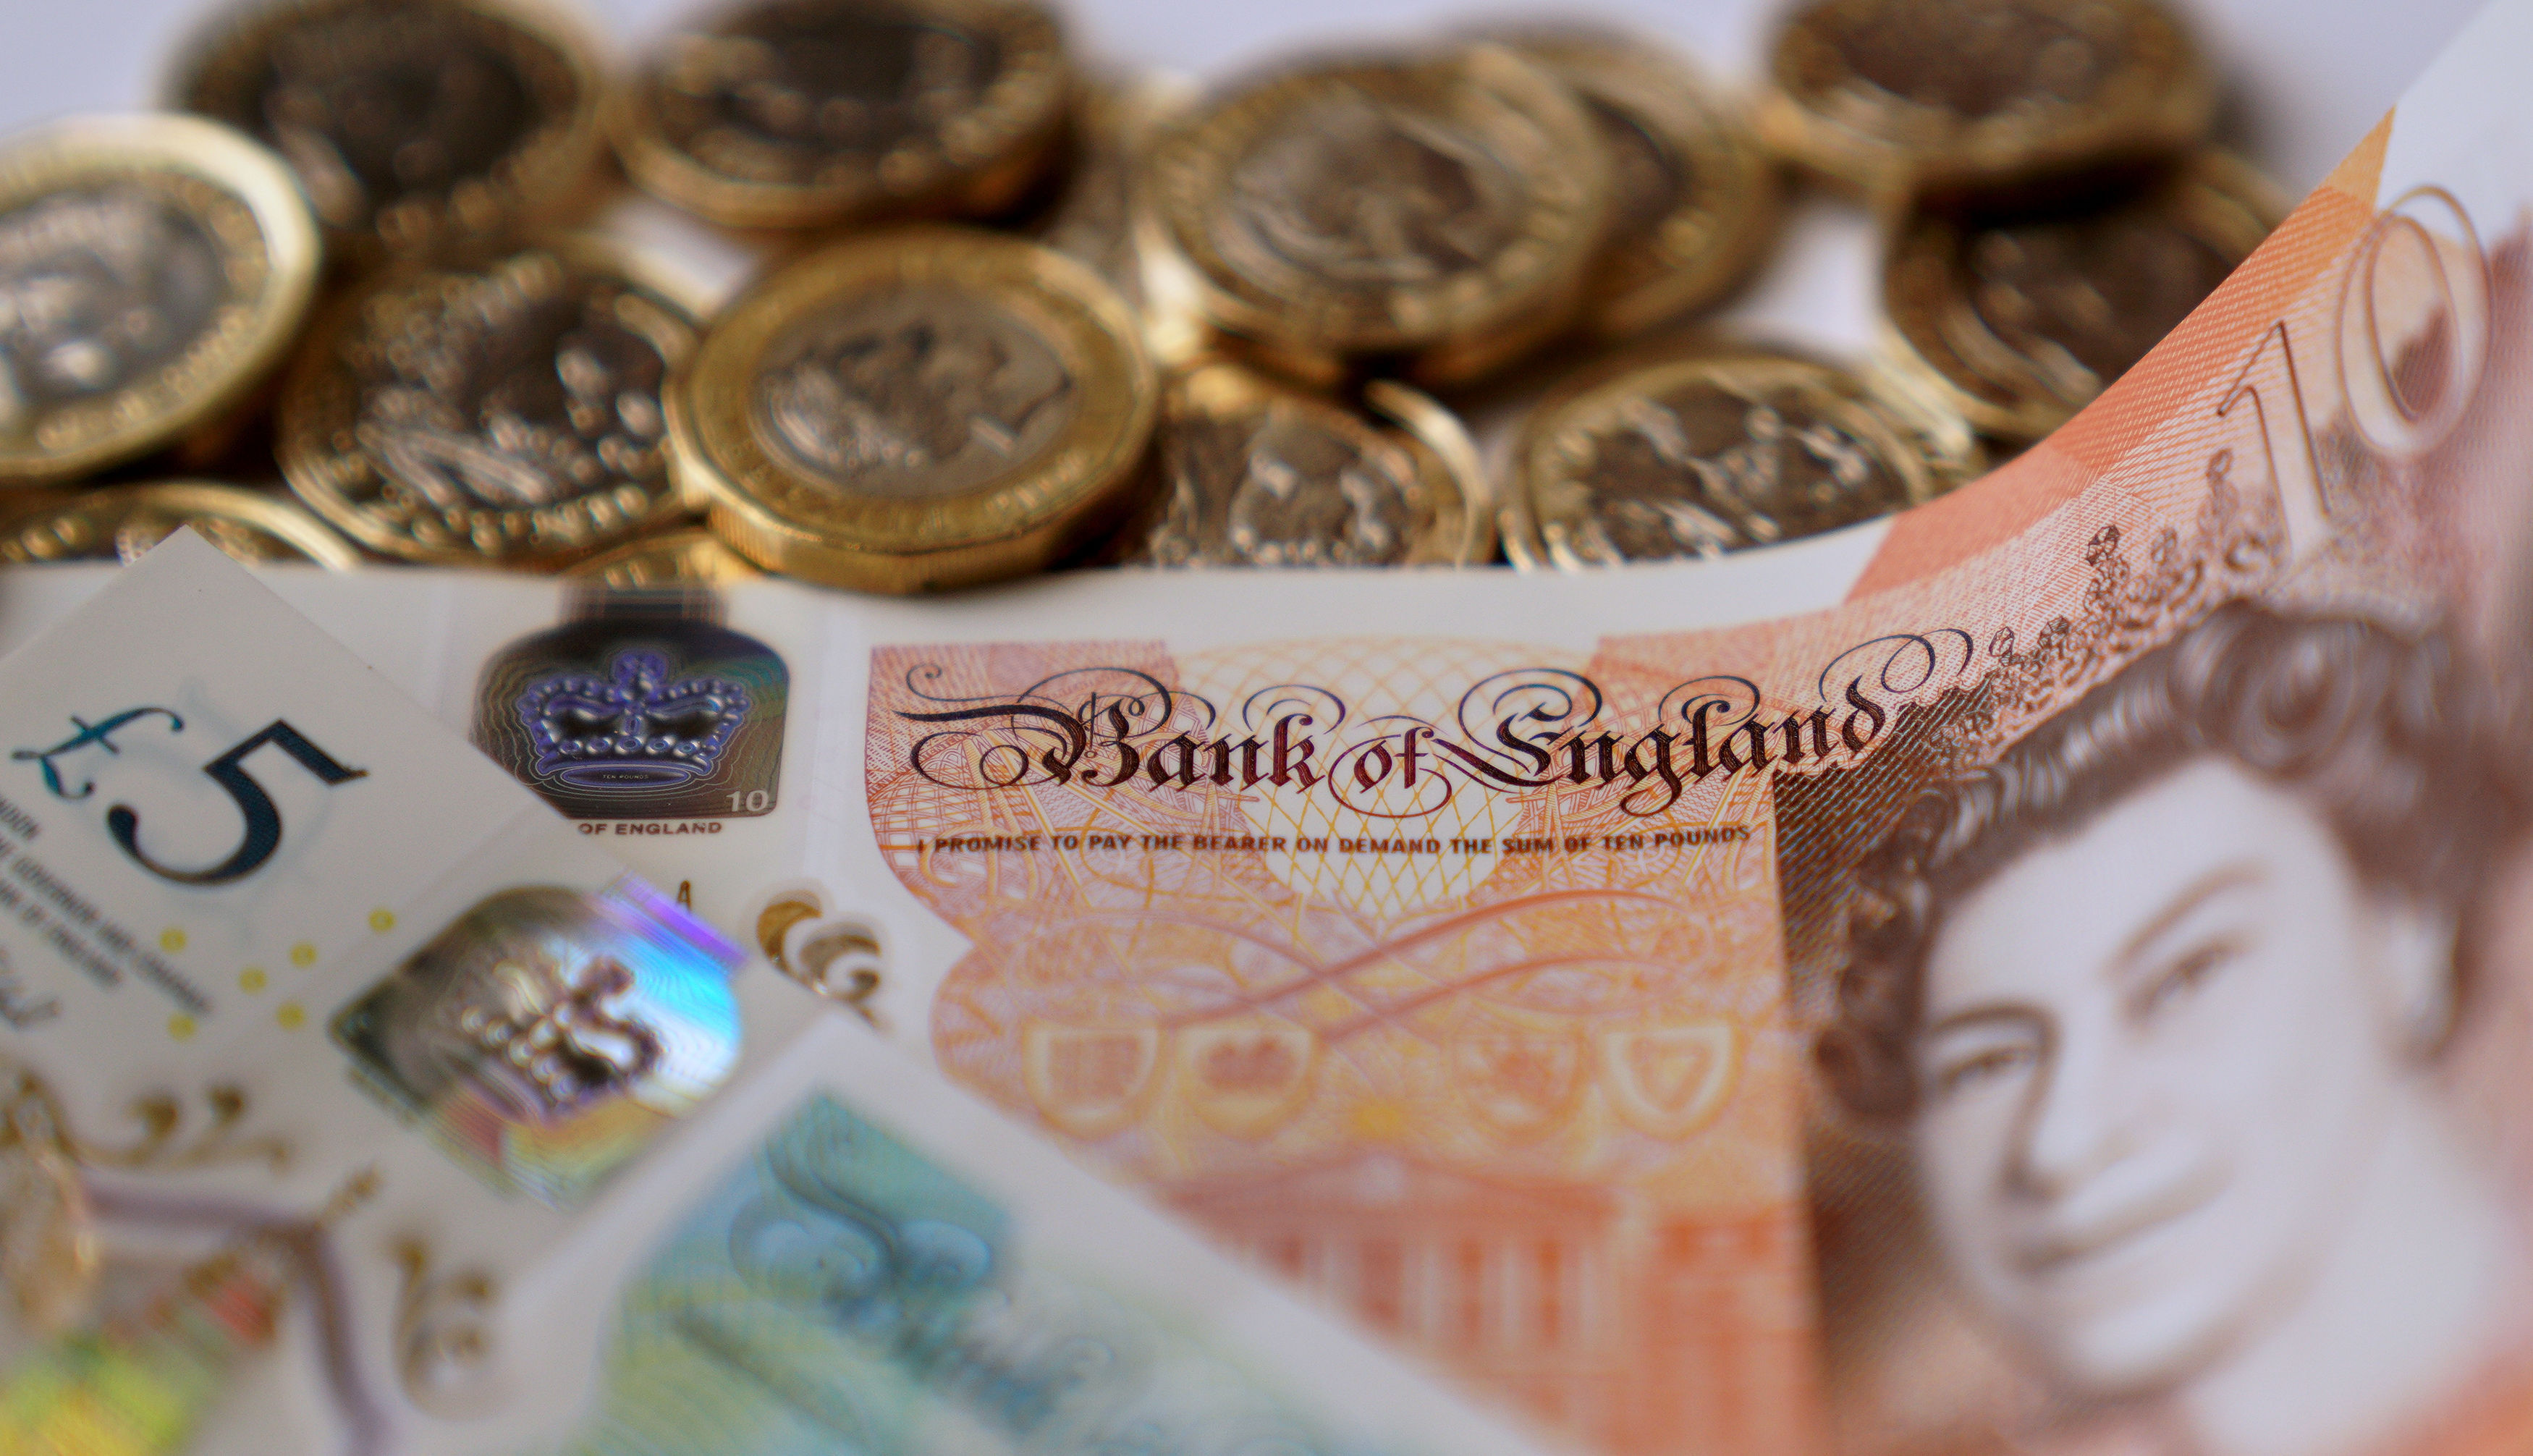 The Institute for Public Policy Research (IPPR) said if current UK trends continue, household debt is set to increase in real terms by 2027 from £70,400 to £85,700. (Gareth Fuller/PA Wire)